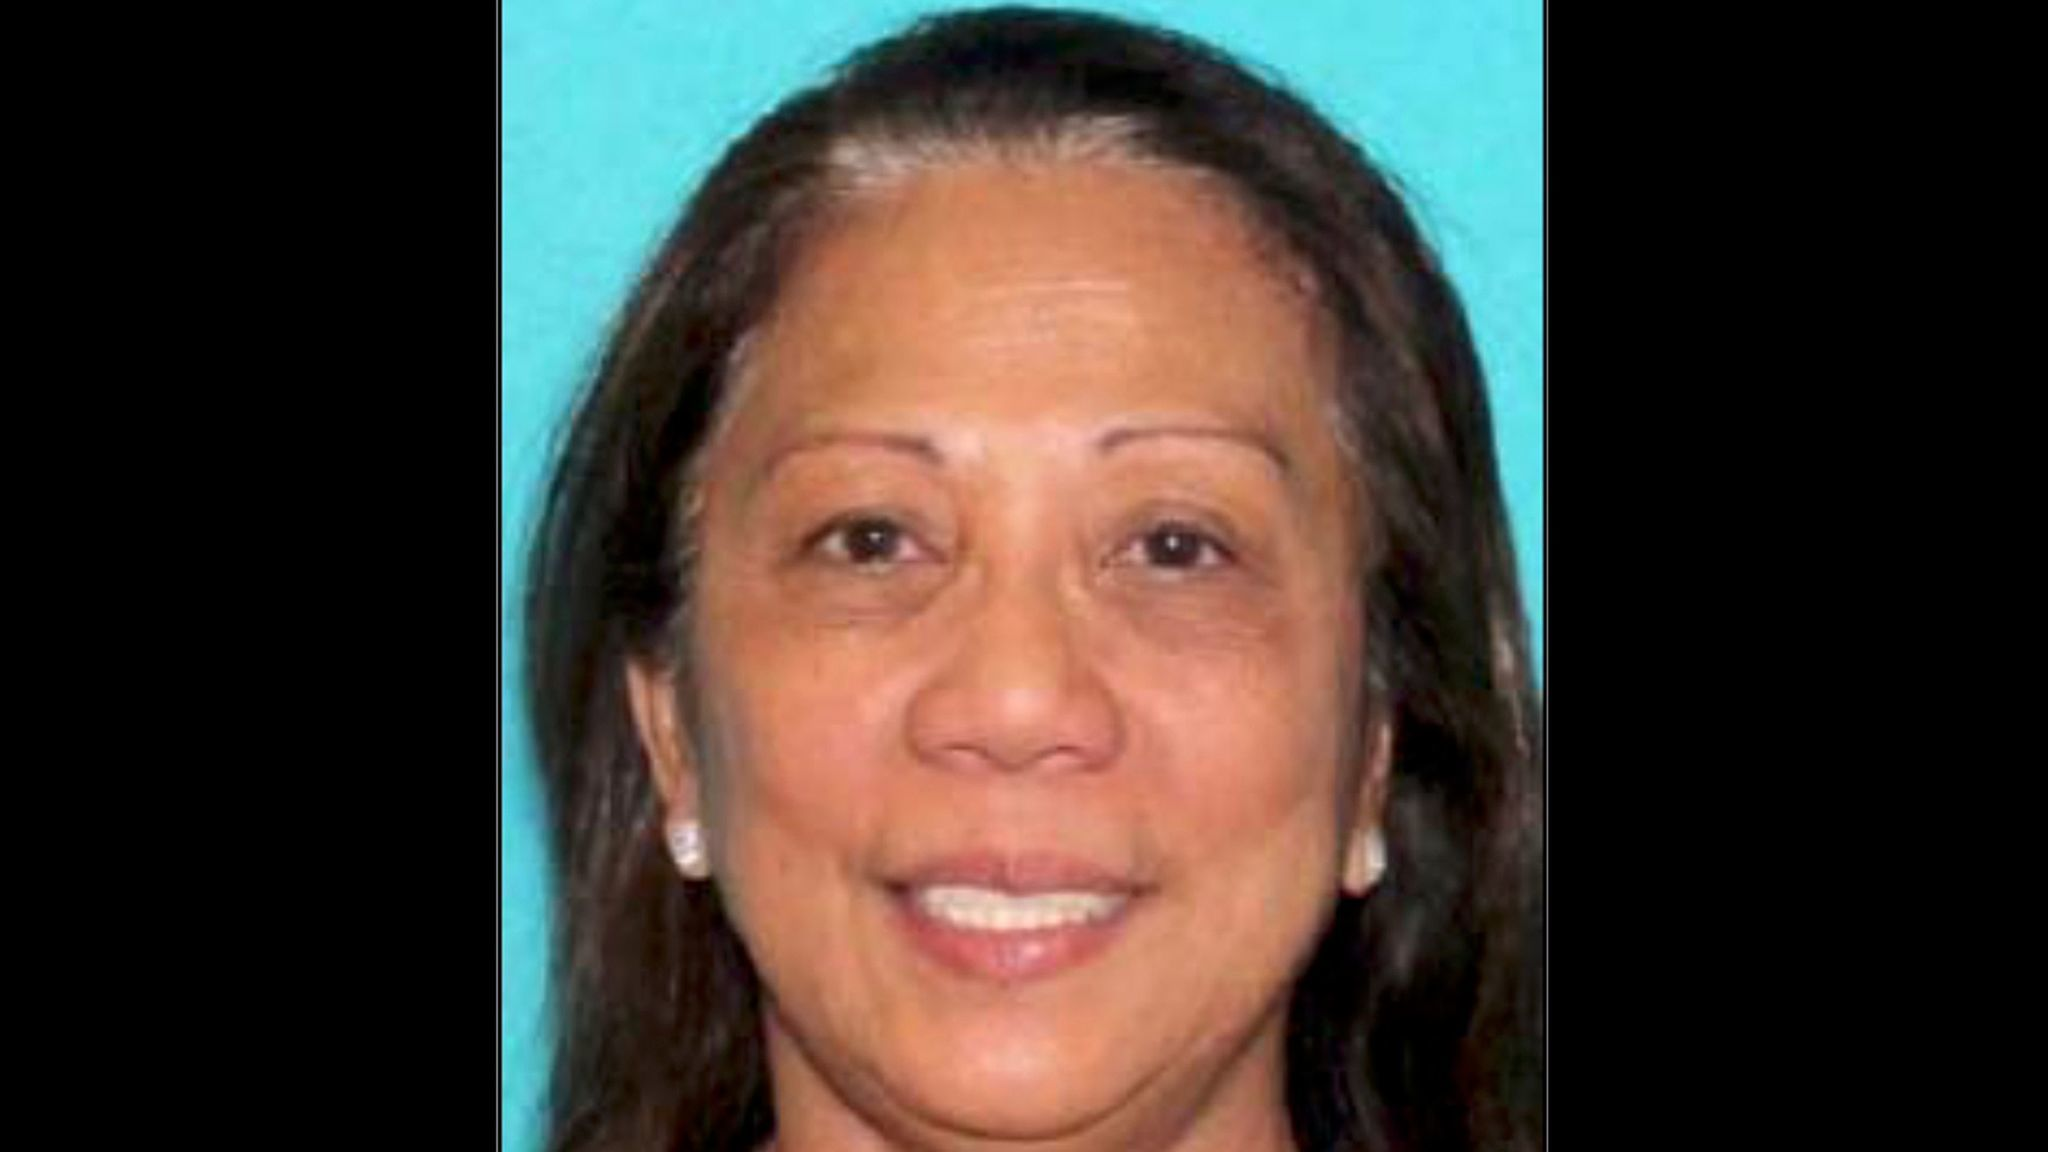 Marilou Danley, 62, returned to the United States from the Philippines on Tuesday night.